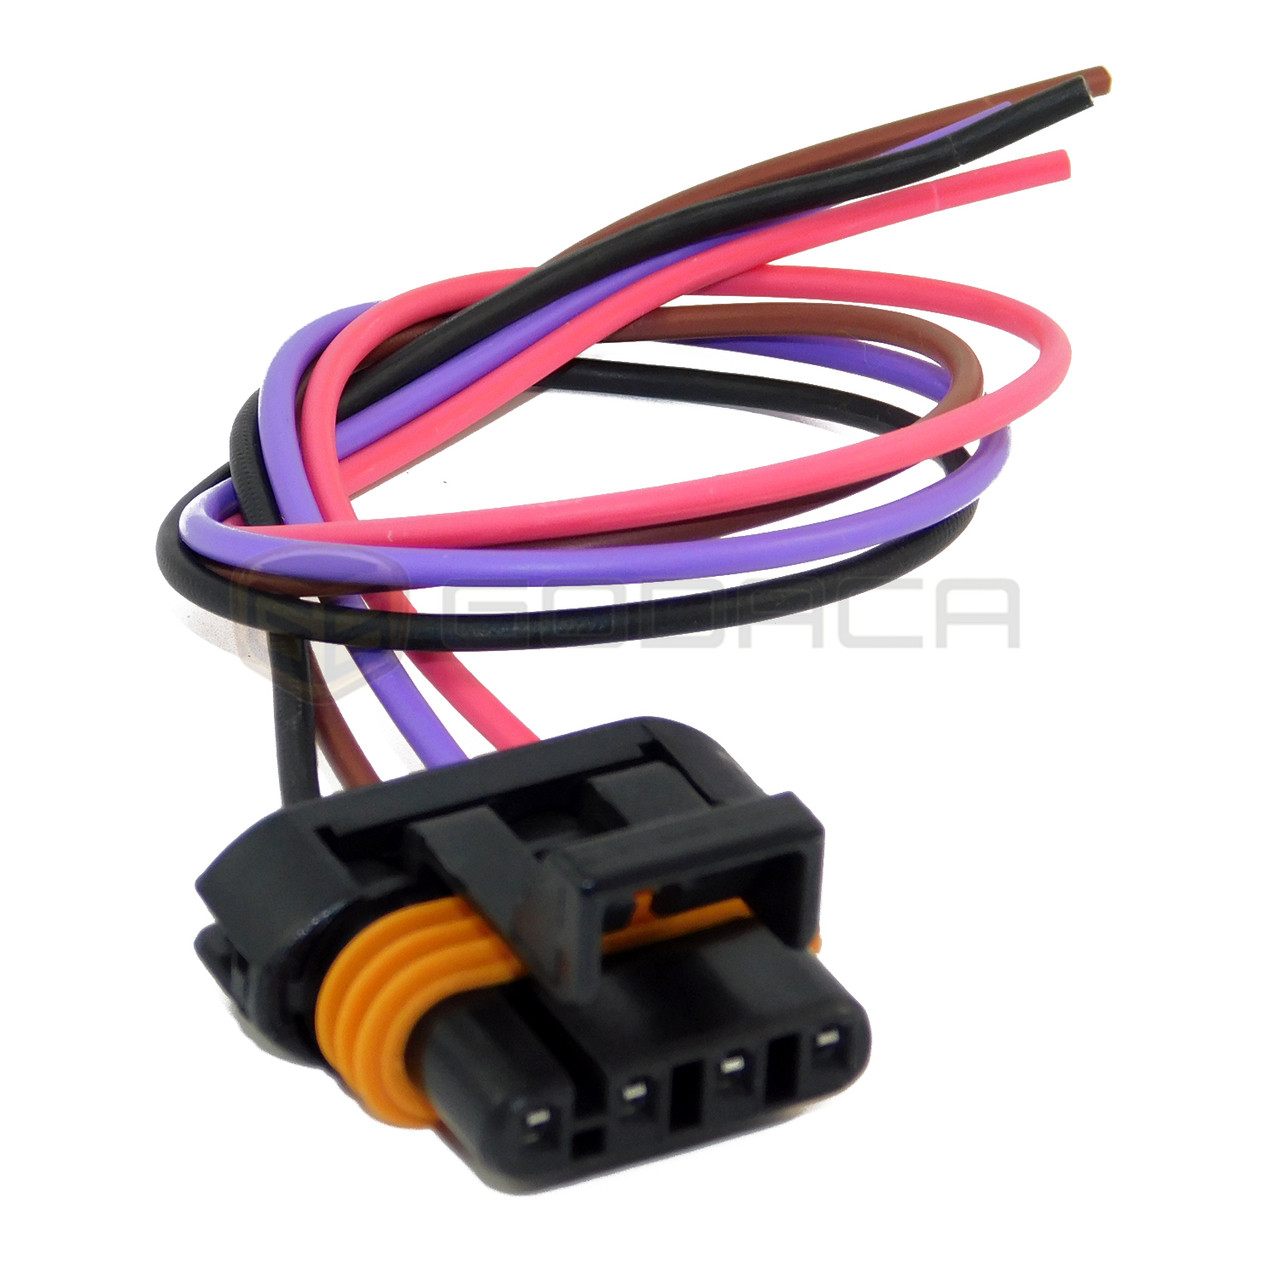 ls2 ignition coil diagram moreover msd ignition coil better wiring  ls2 ignition coil diagram moreover msd ignition coil understandingls1 ignition coil wiring box wiring diagram1 x